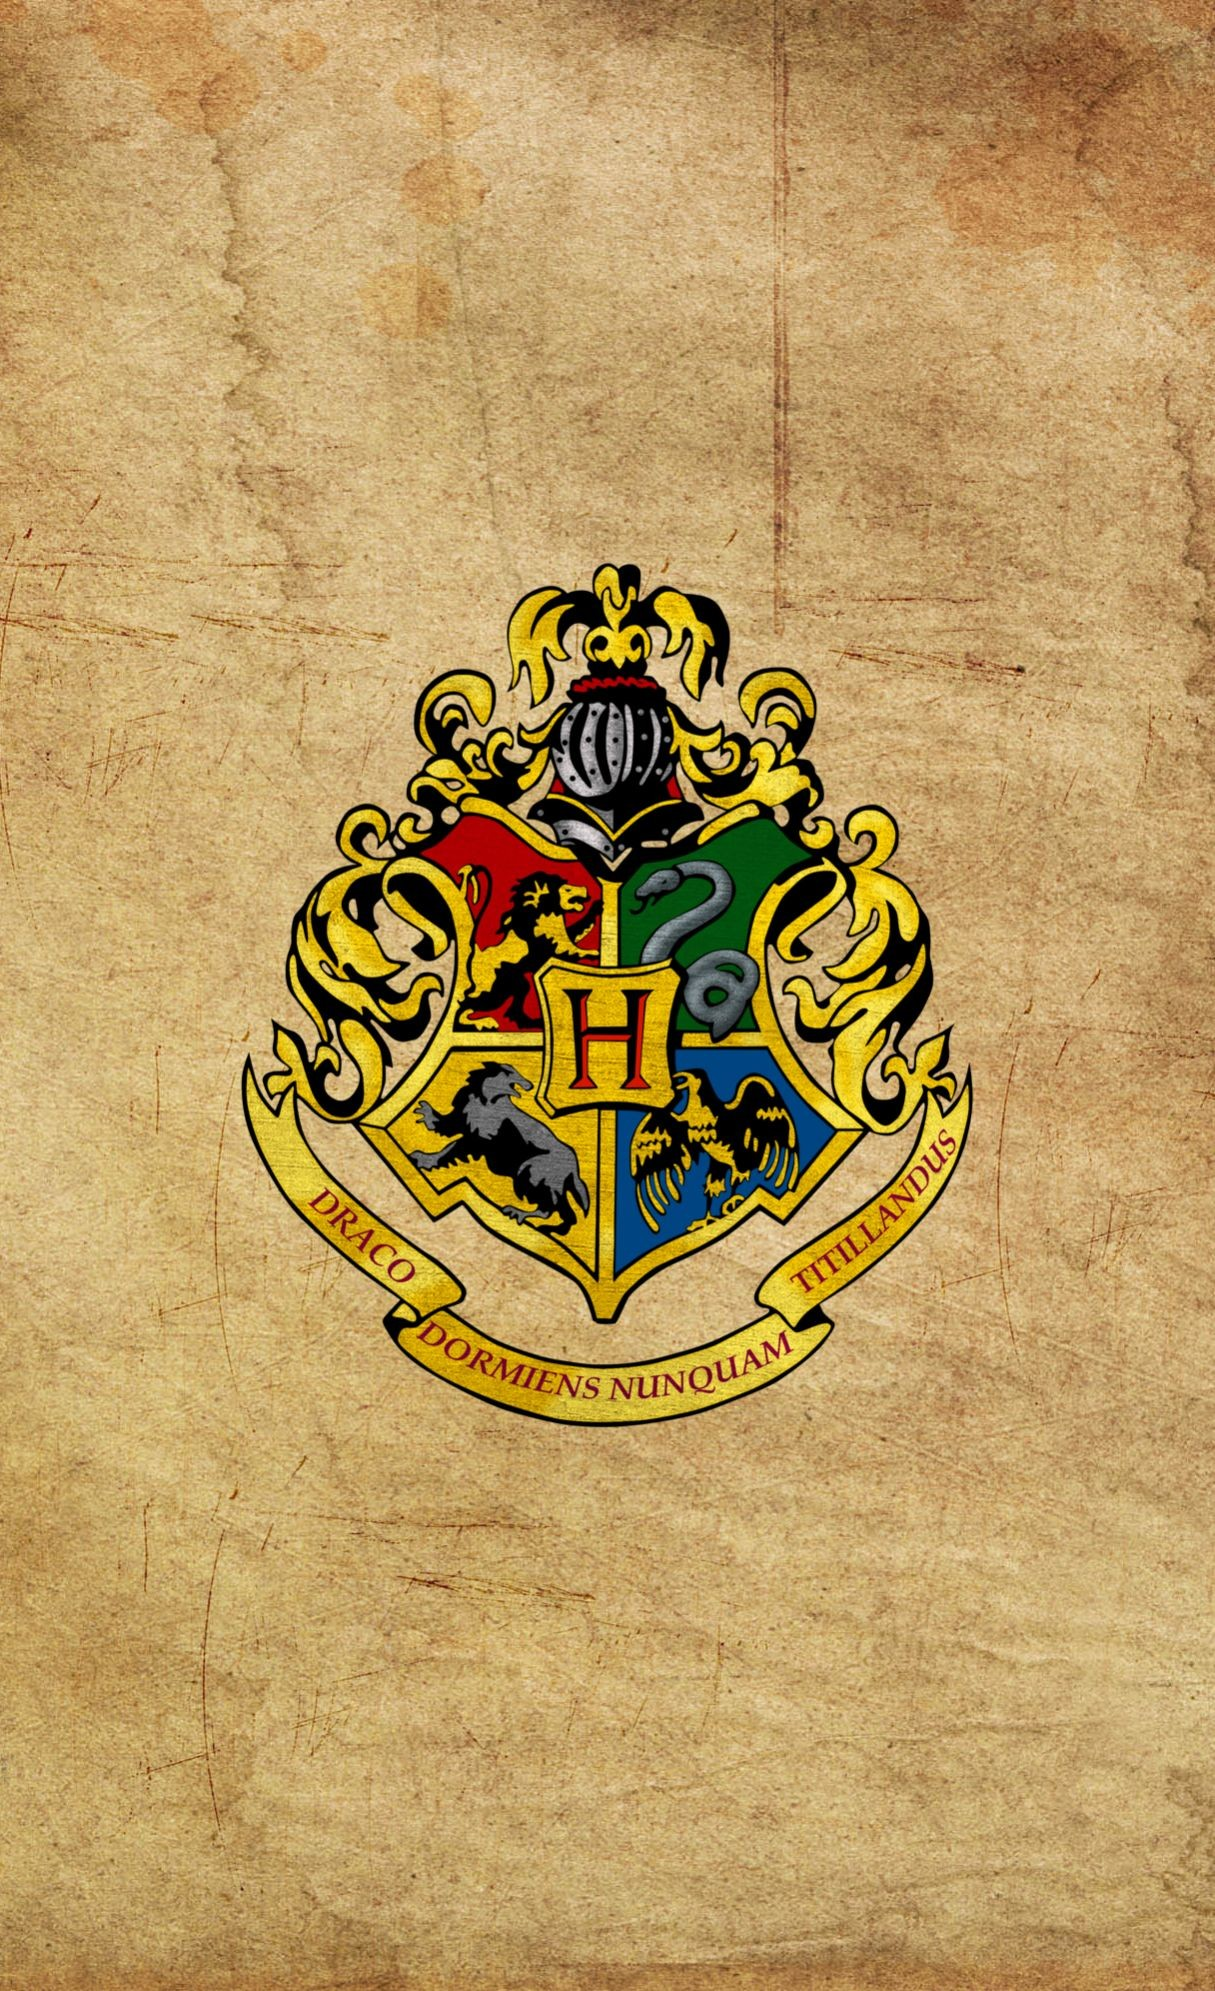 Res: 1215x1991, Find the best Harry Potter Phone Wallpaper on GetWallpapers.